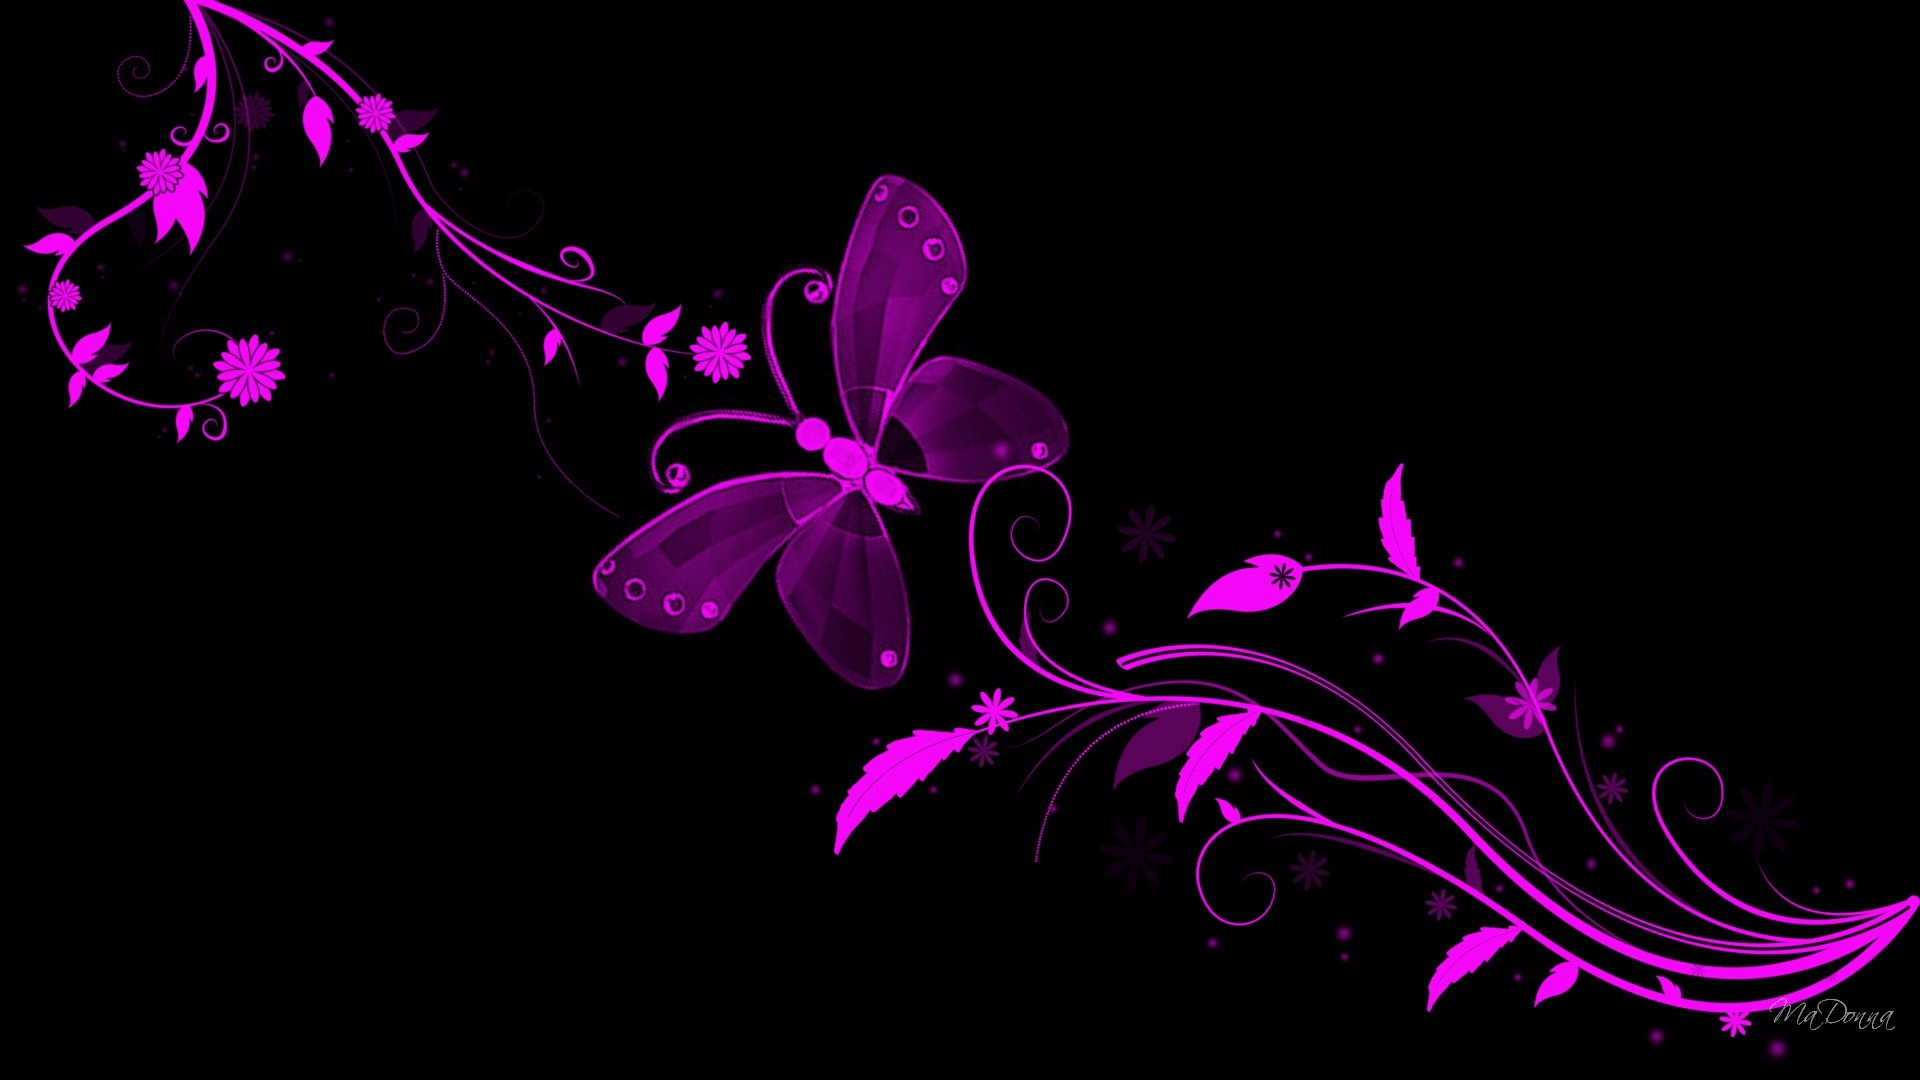 Abstract Flowers Backgrounds 6907 Hd Wallpapers in Flowers – Imagesci .